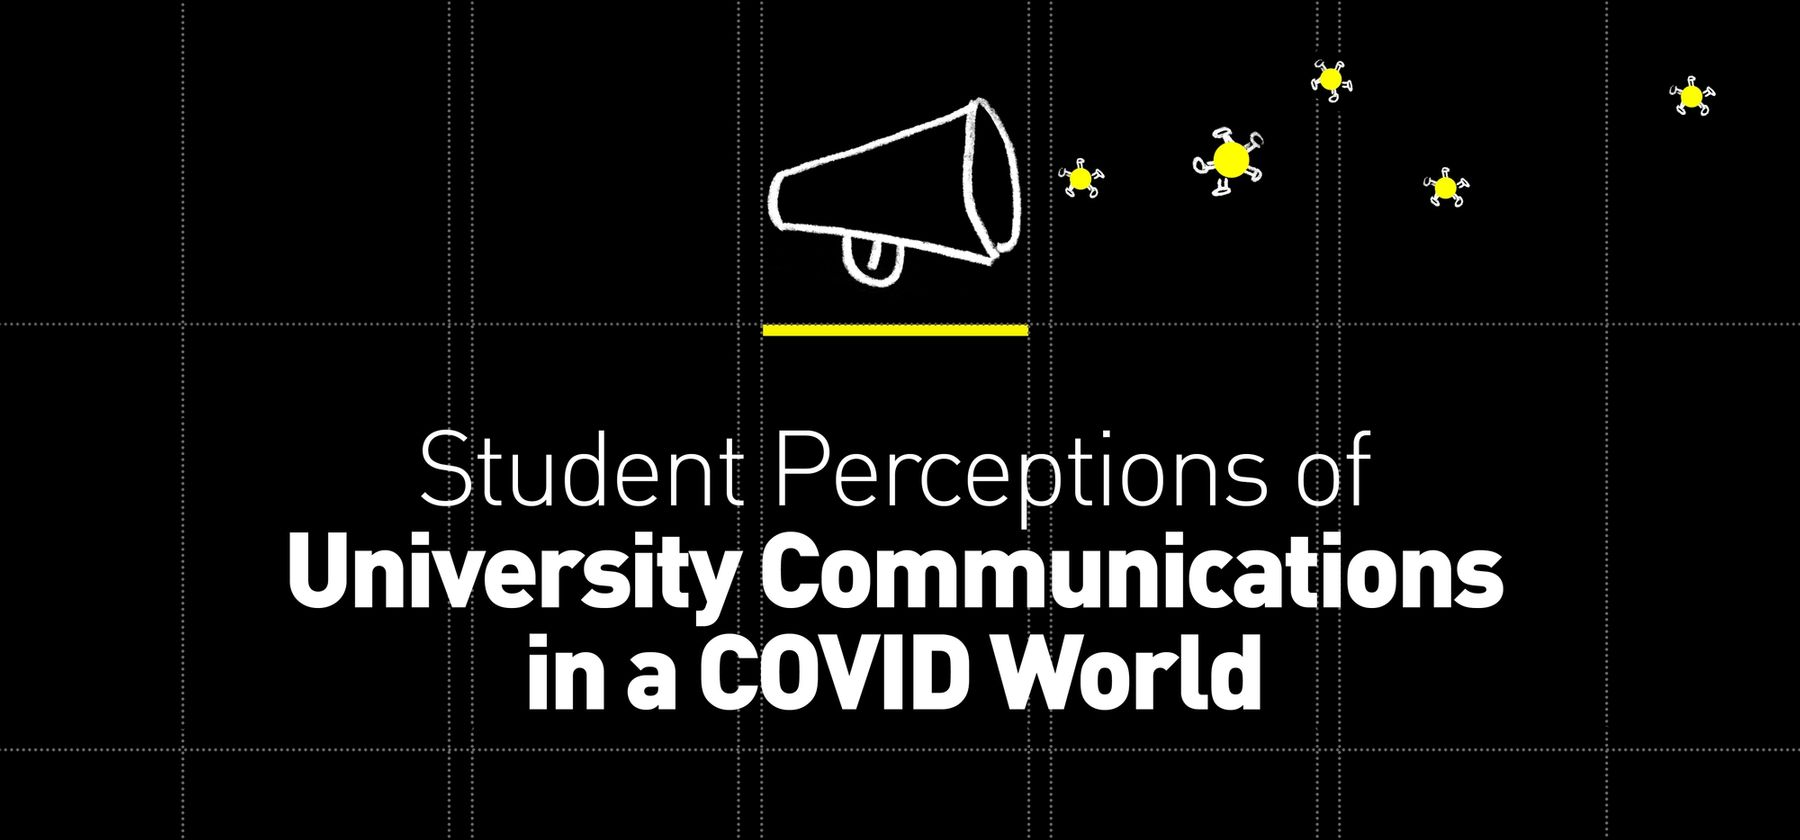 Student Perceptions of University Communications in a COVID World